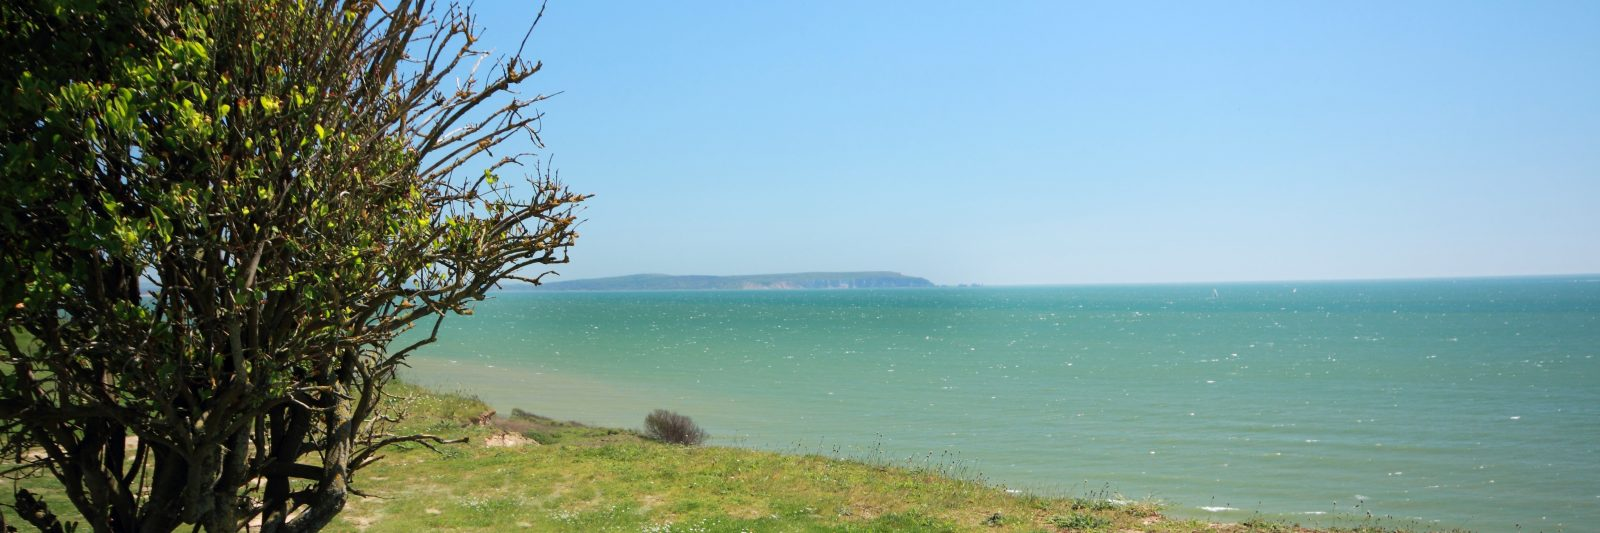 view of Isle of Wight from Highcliffe cliff top